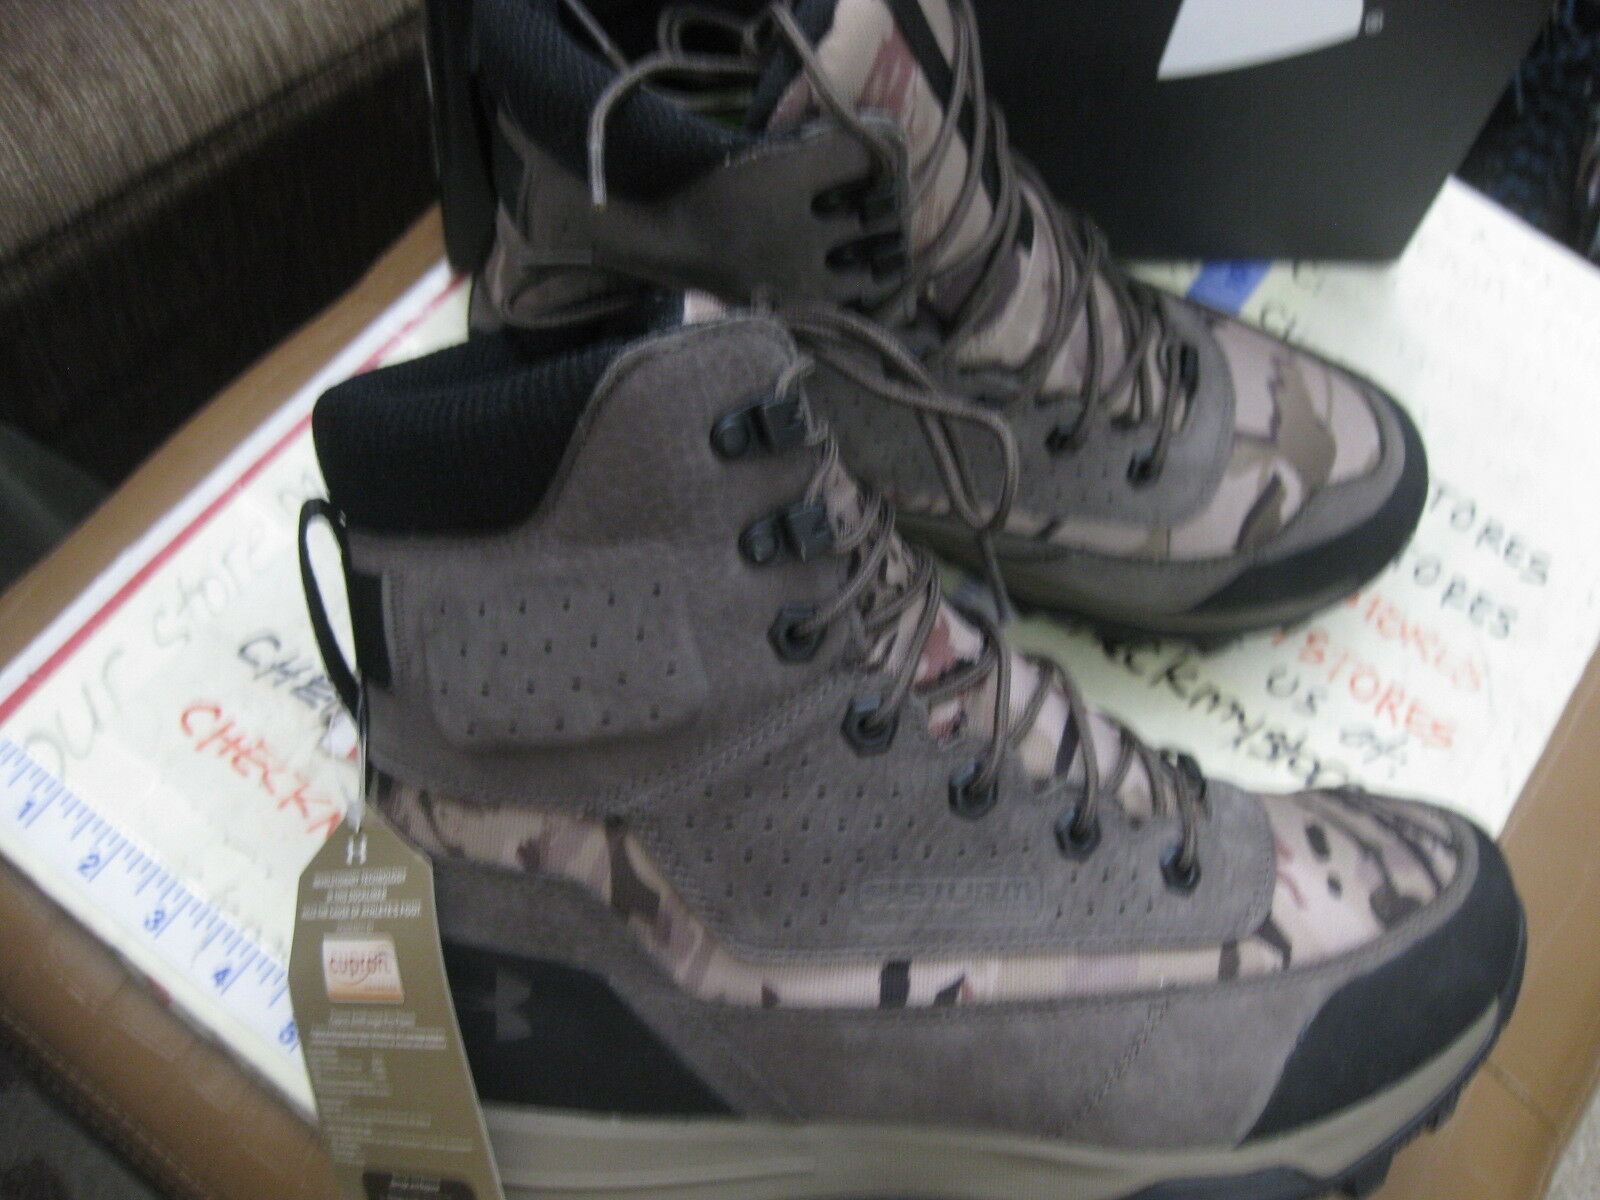 NEW Under Armour UA SF SF SF Bozeman 2.0  INSULATED Hiking Hunting stivali 1299237-900 12923d